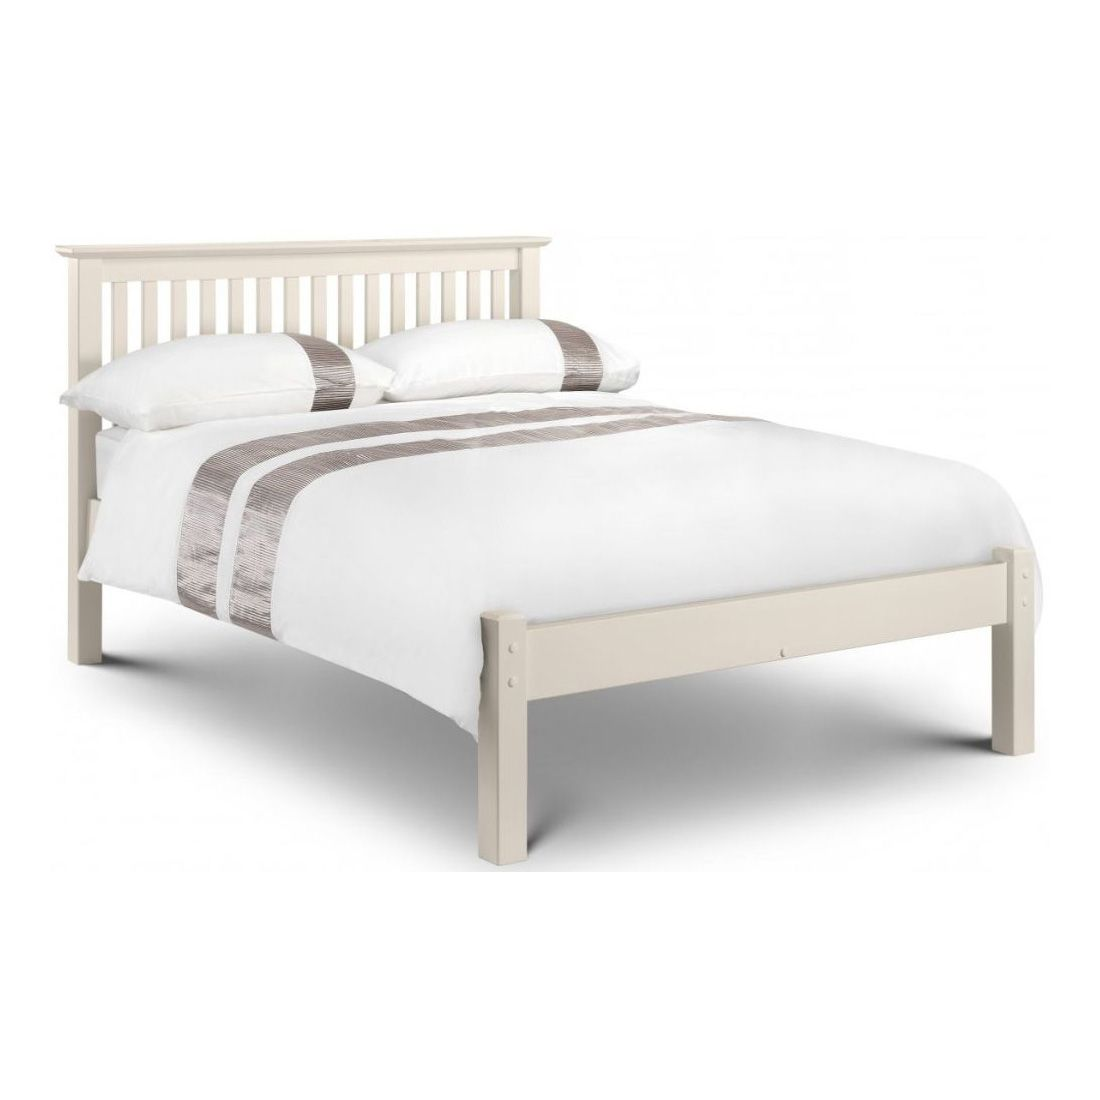 Practical Silentnight Hayes Double Bed Frame Home, Furniture & Diy White